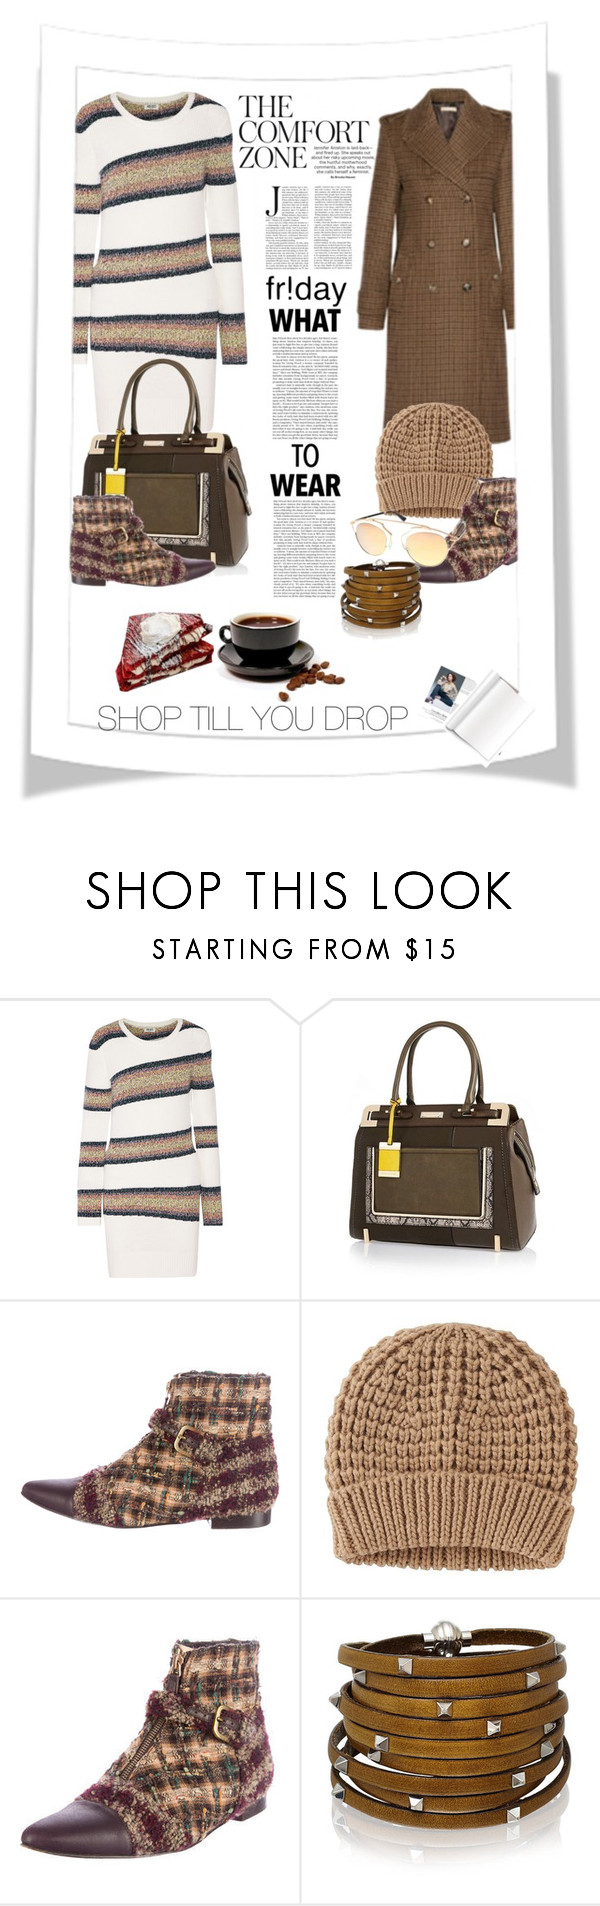 """""""Finding comfort on Black Friday"""" by afezoftheheart ❤ liked on Polyvore featuring Forum, Kenzo, River Island, Chanel, Uniqlo, Sif Jakobs Jewellery, Christian Dior, comfy, MyStyle and WhatToWear"""